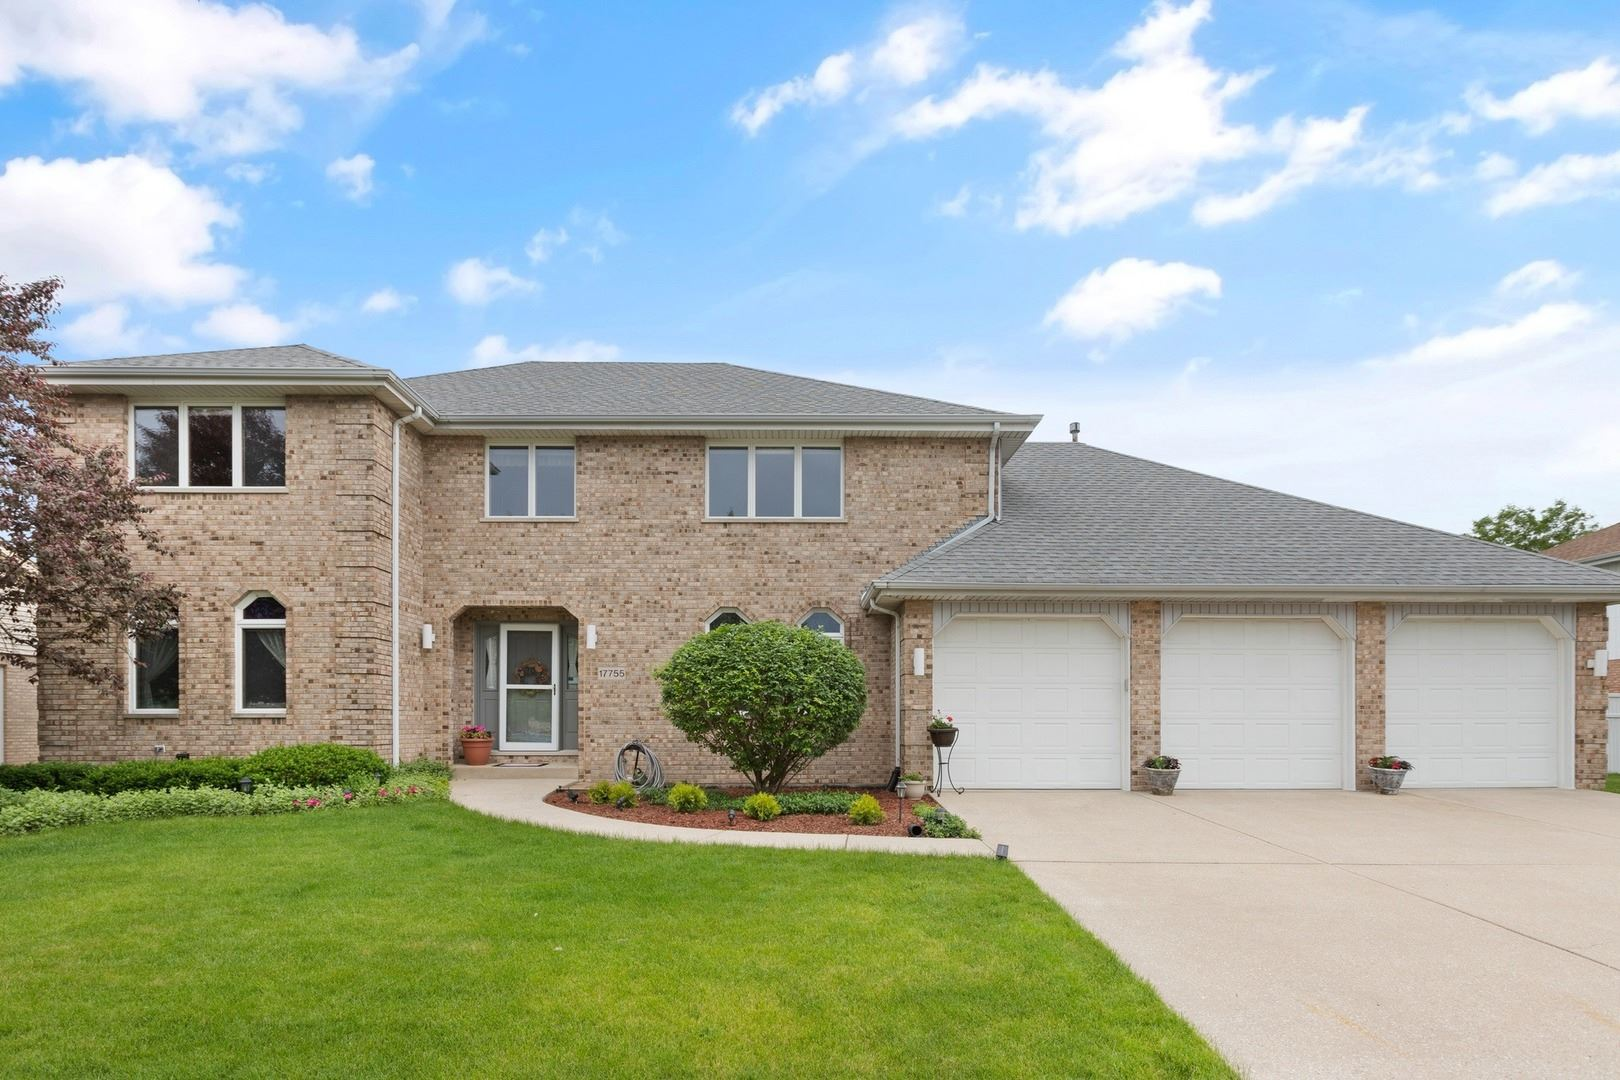 17755 Navajo Trace, Tinley Park, IL 60477 - #: 10756689